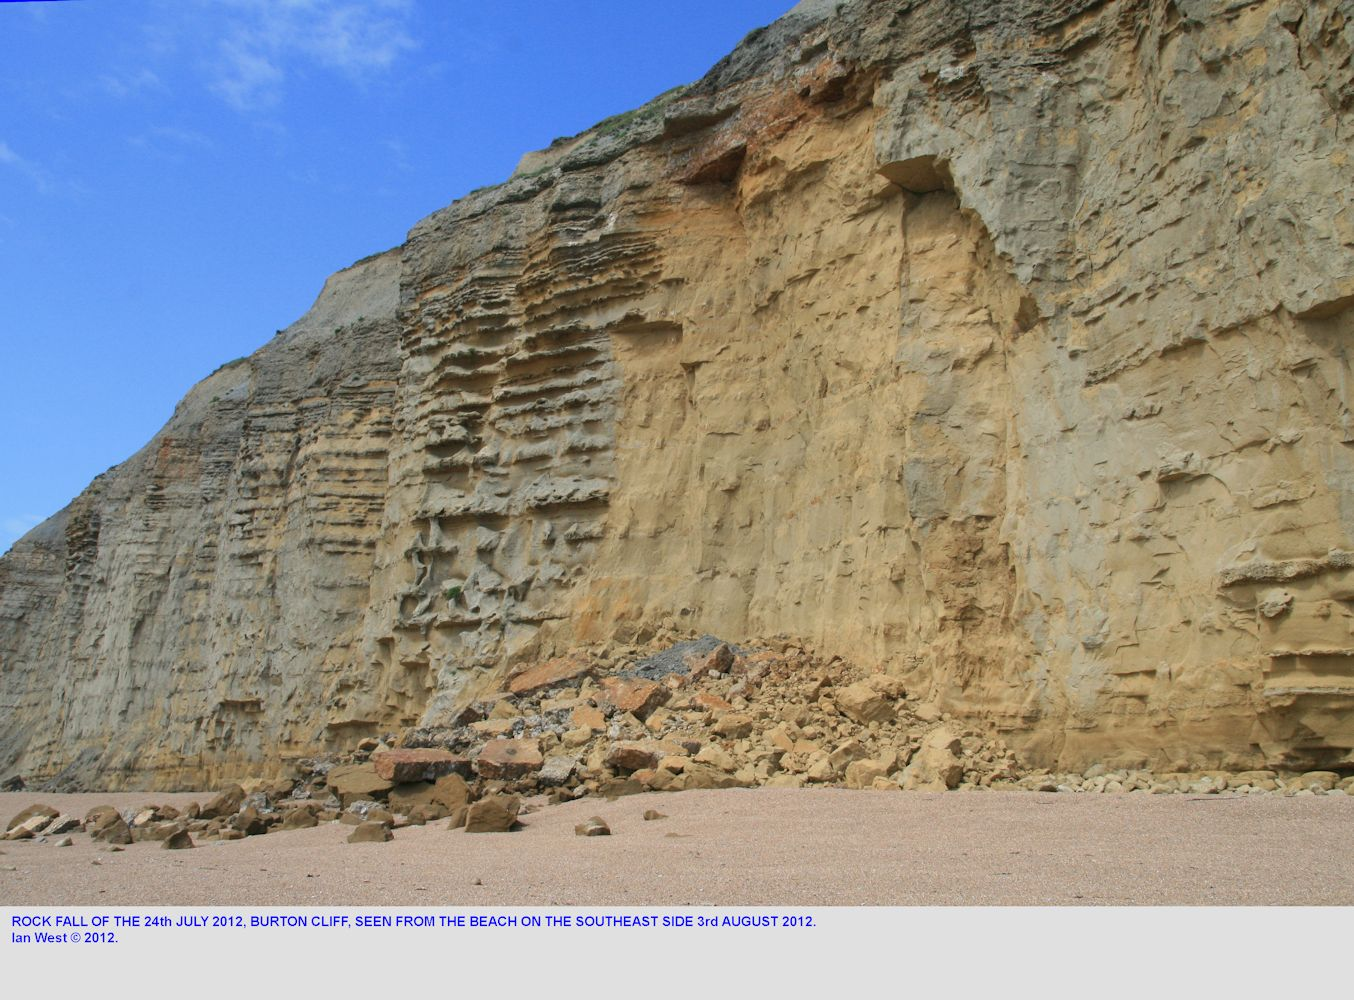 An oblique view from the beach to the southeast of the 24th July 2012 fatal rock fall at Burton Bradstock, Dorset, with photograph taken on the 3rd August